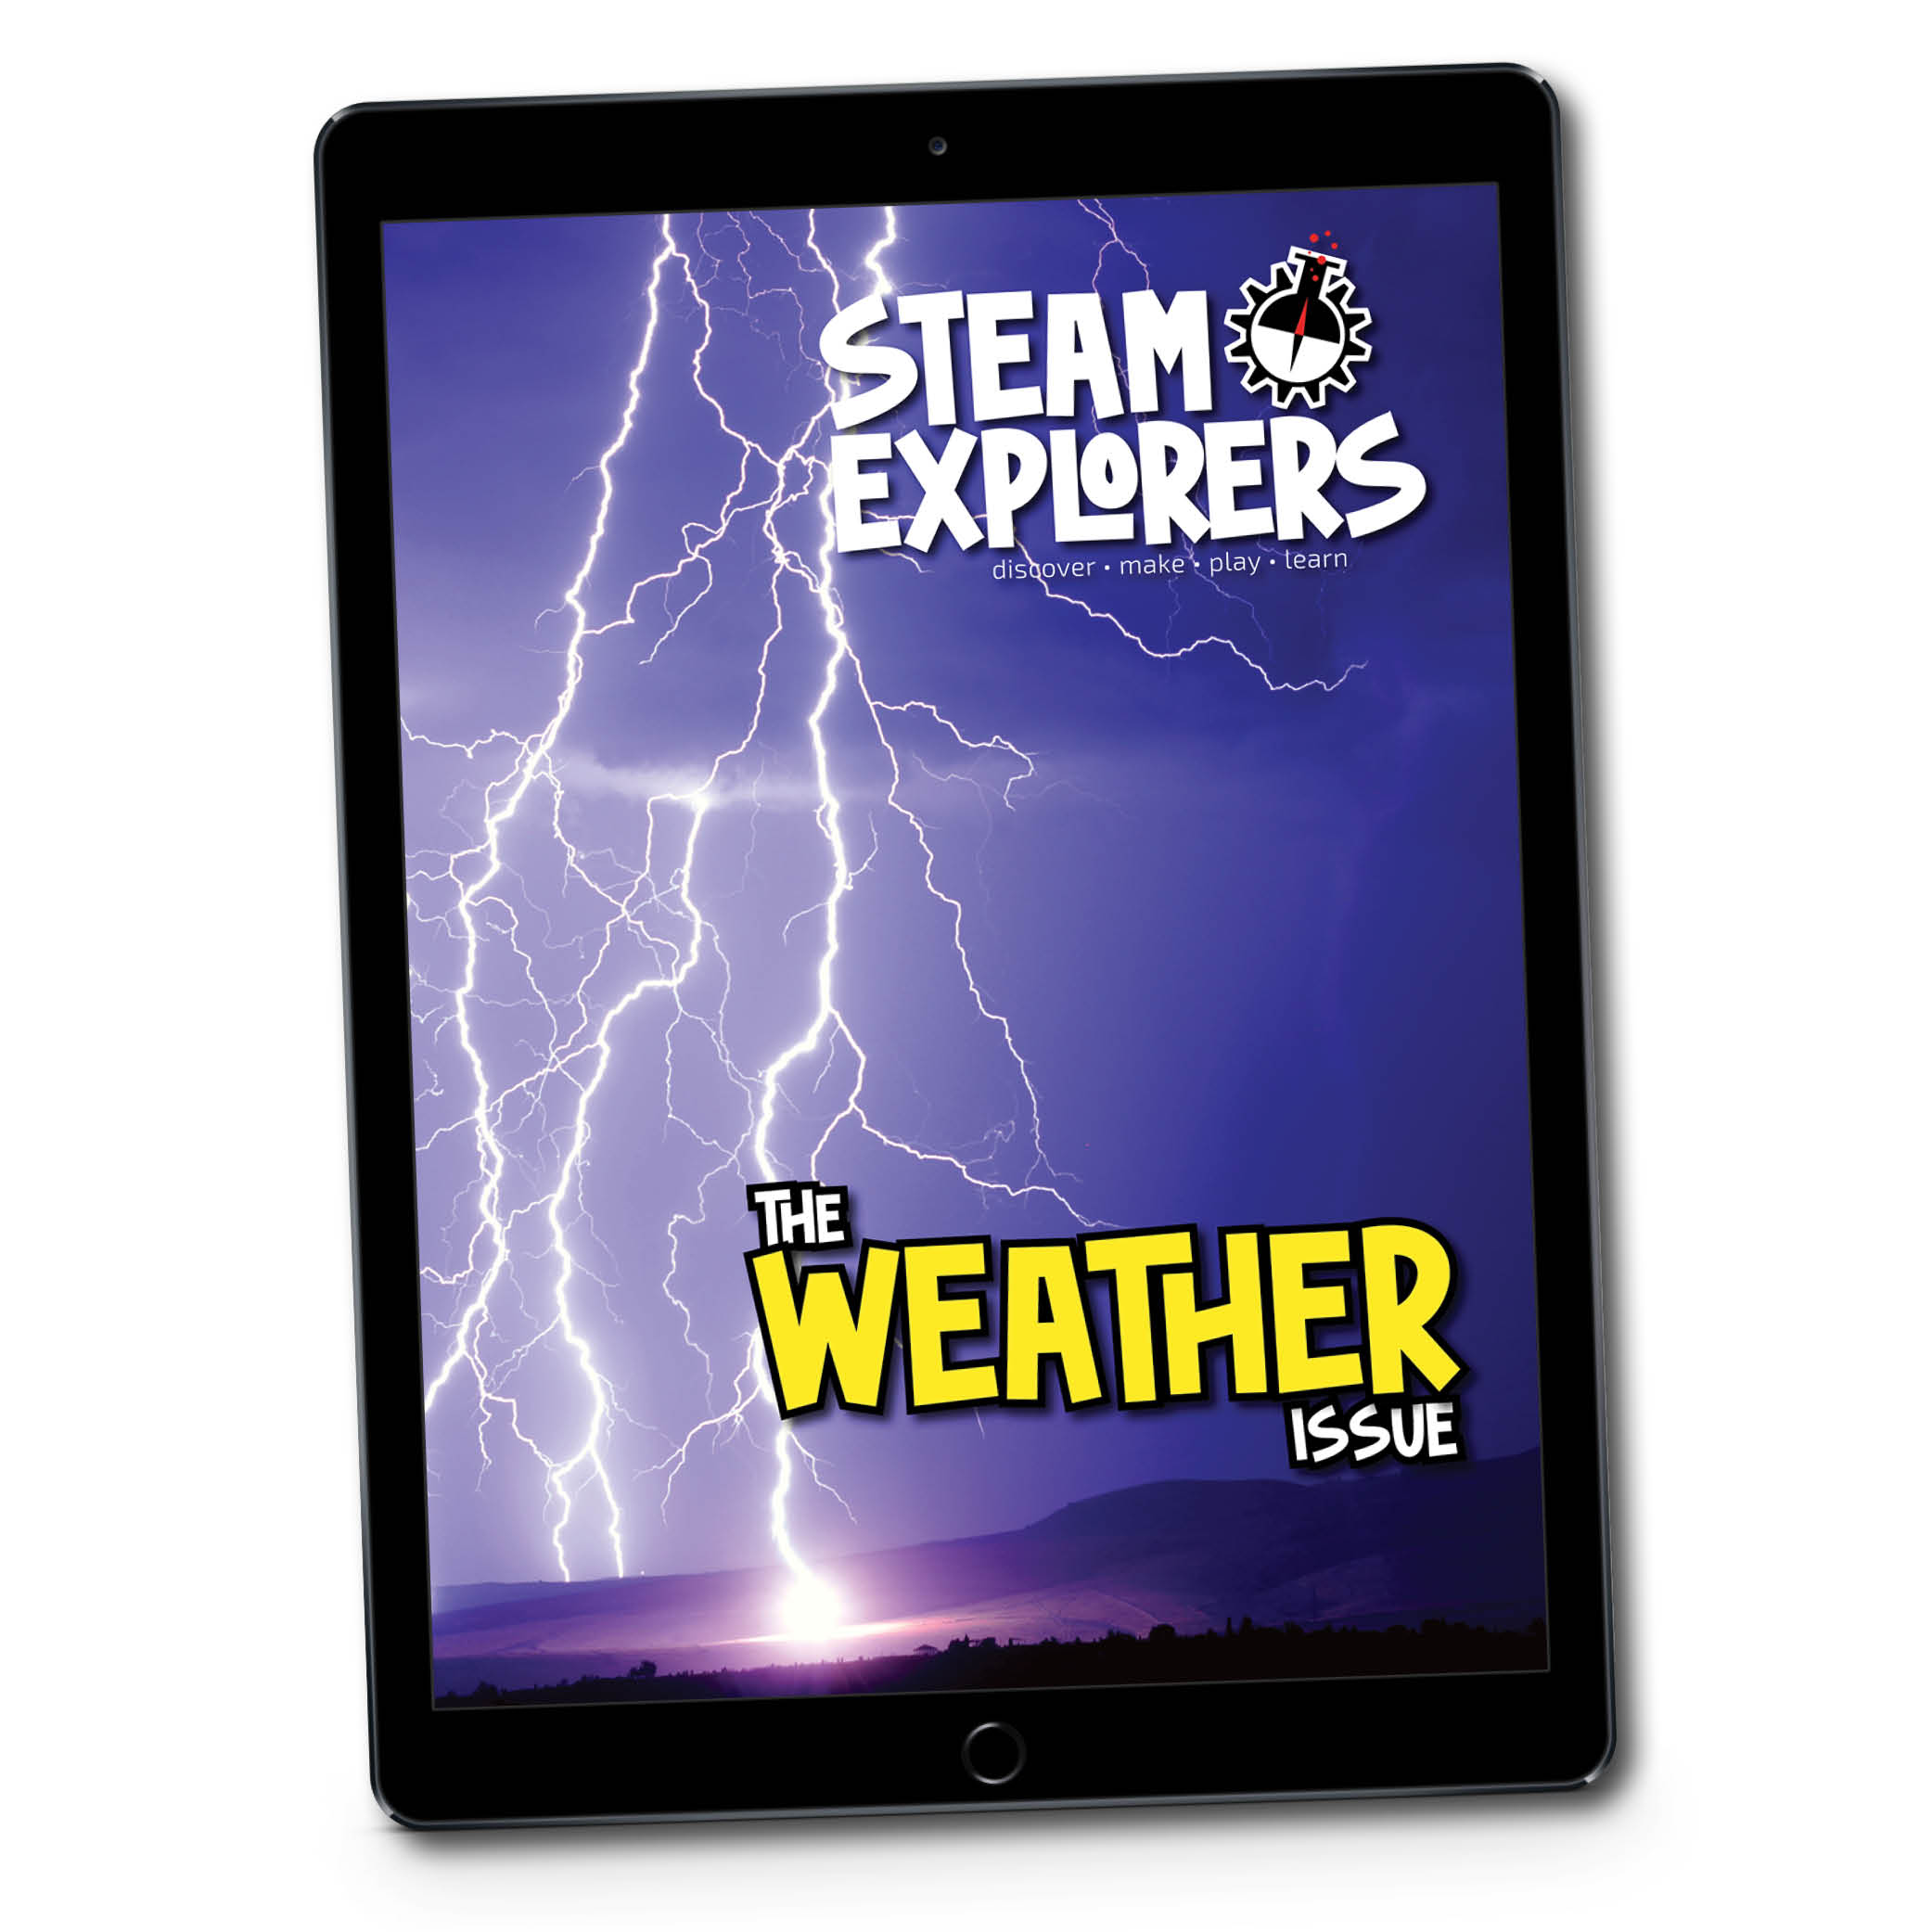 Weather Issue ipad on angle v2